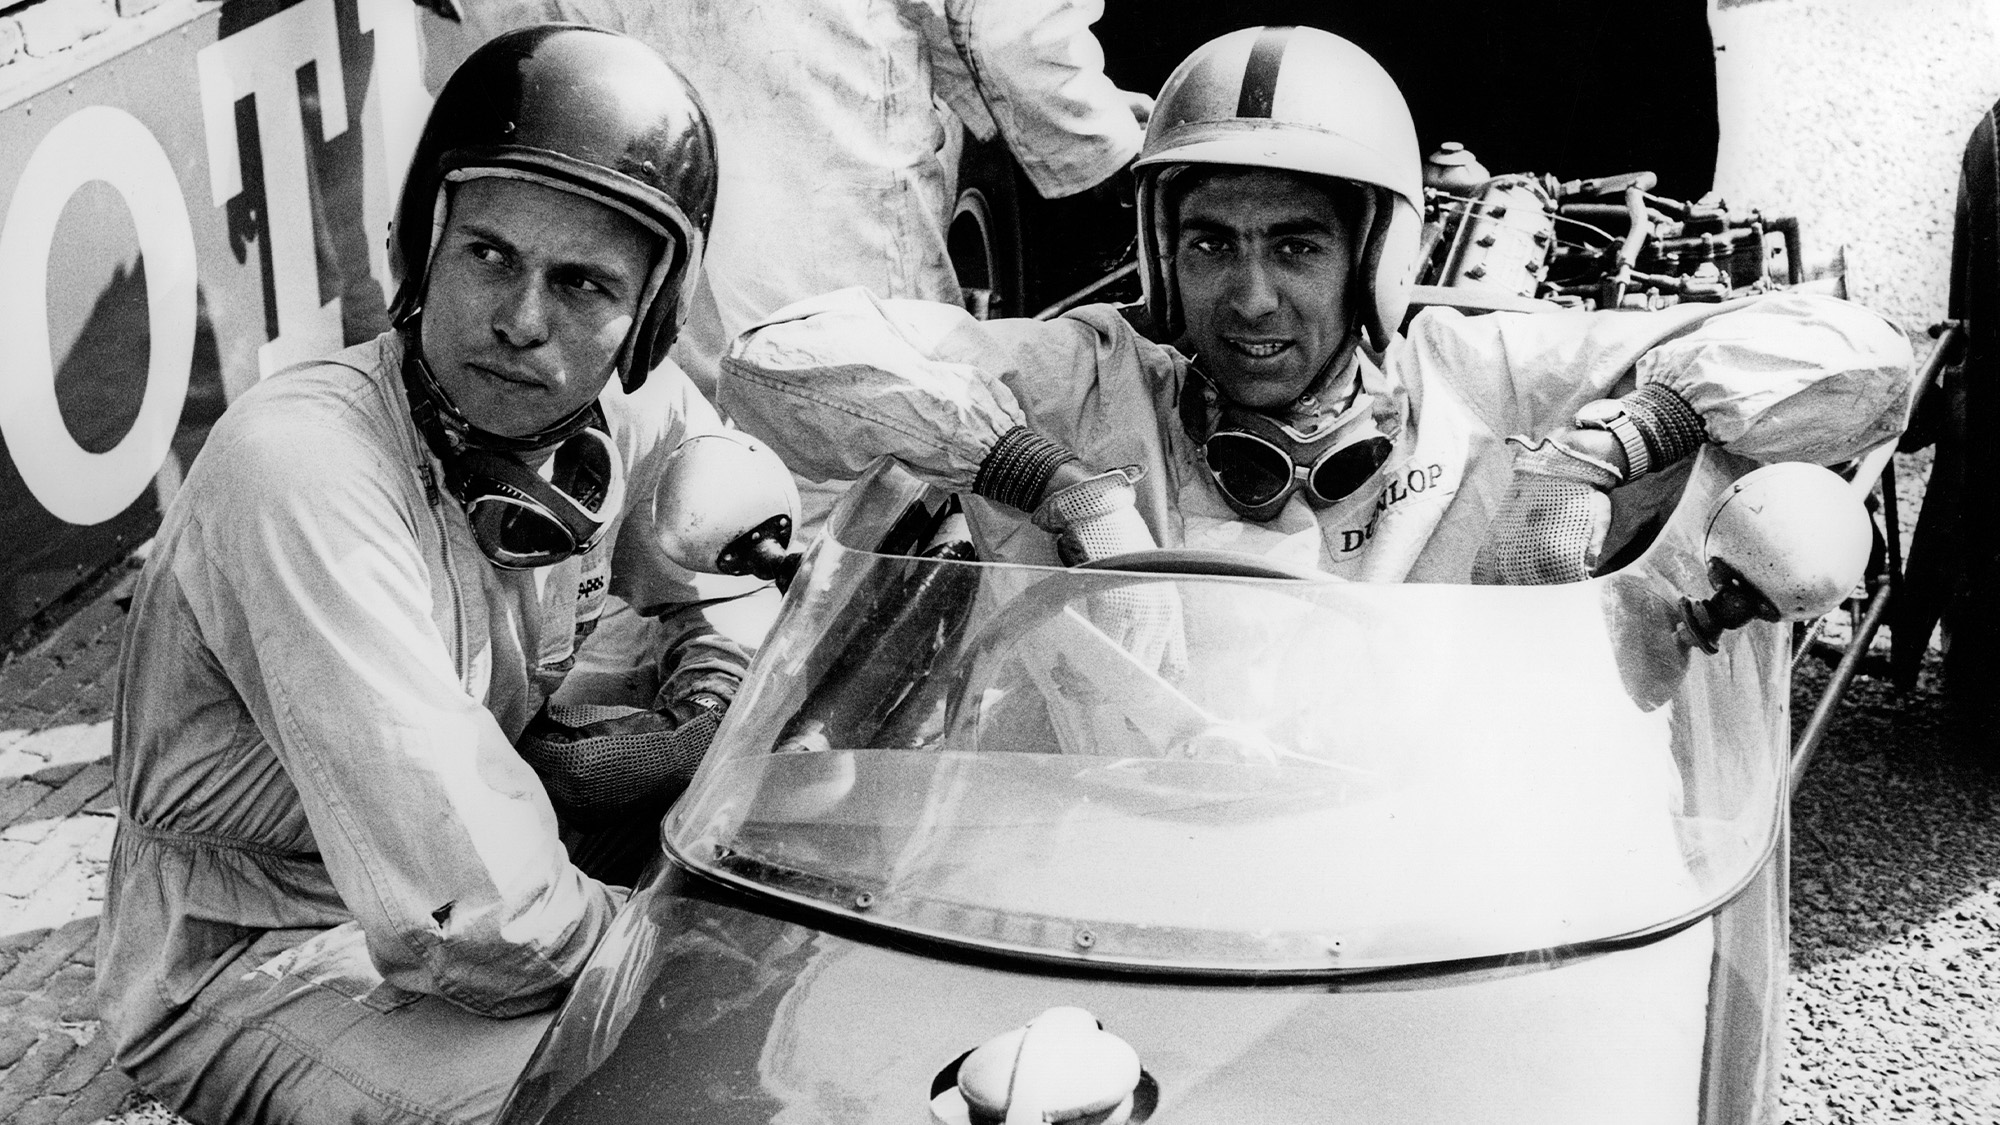 Jim Clark with Alan Stacey ahead of the 1960 Belgian Grand Prix